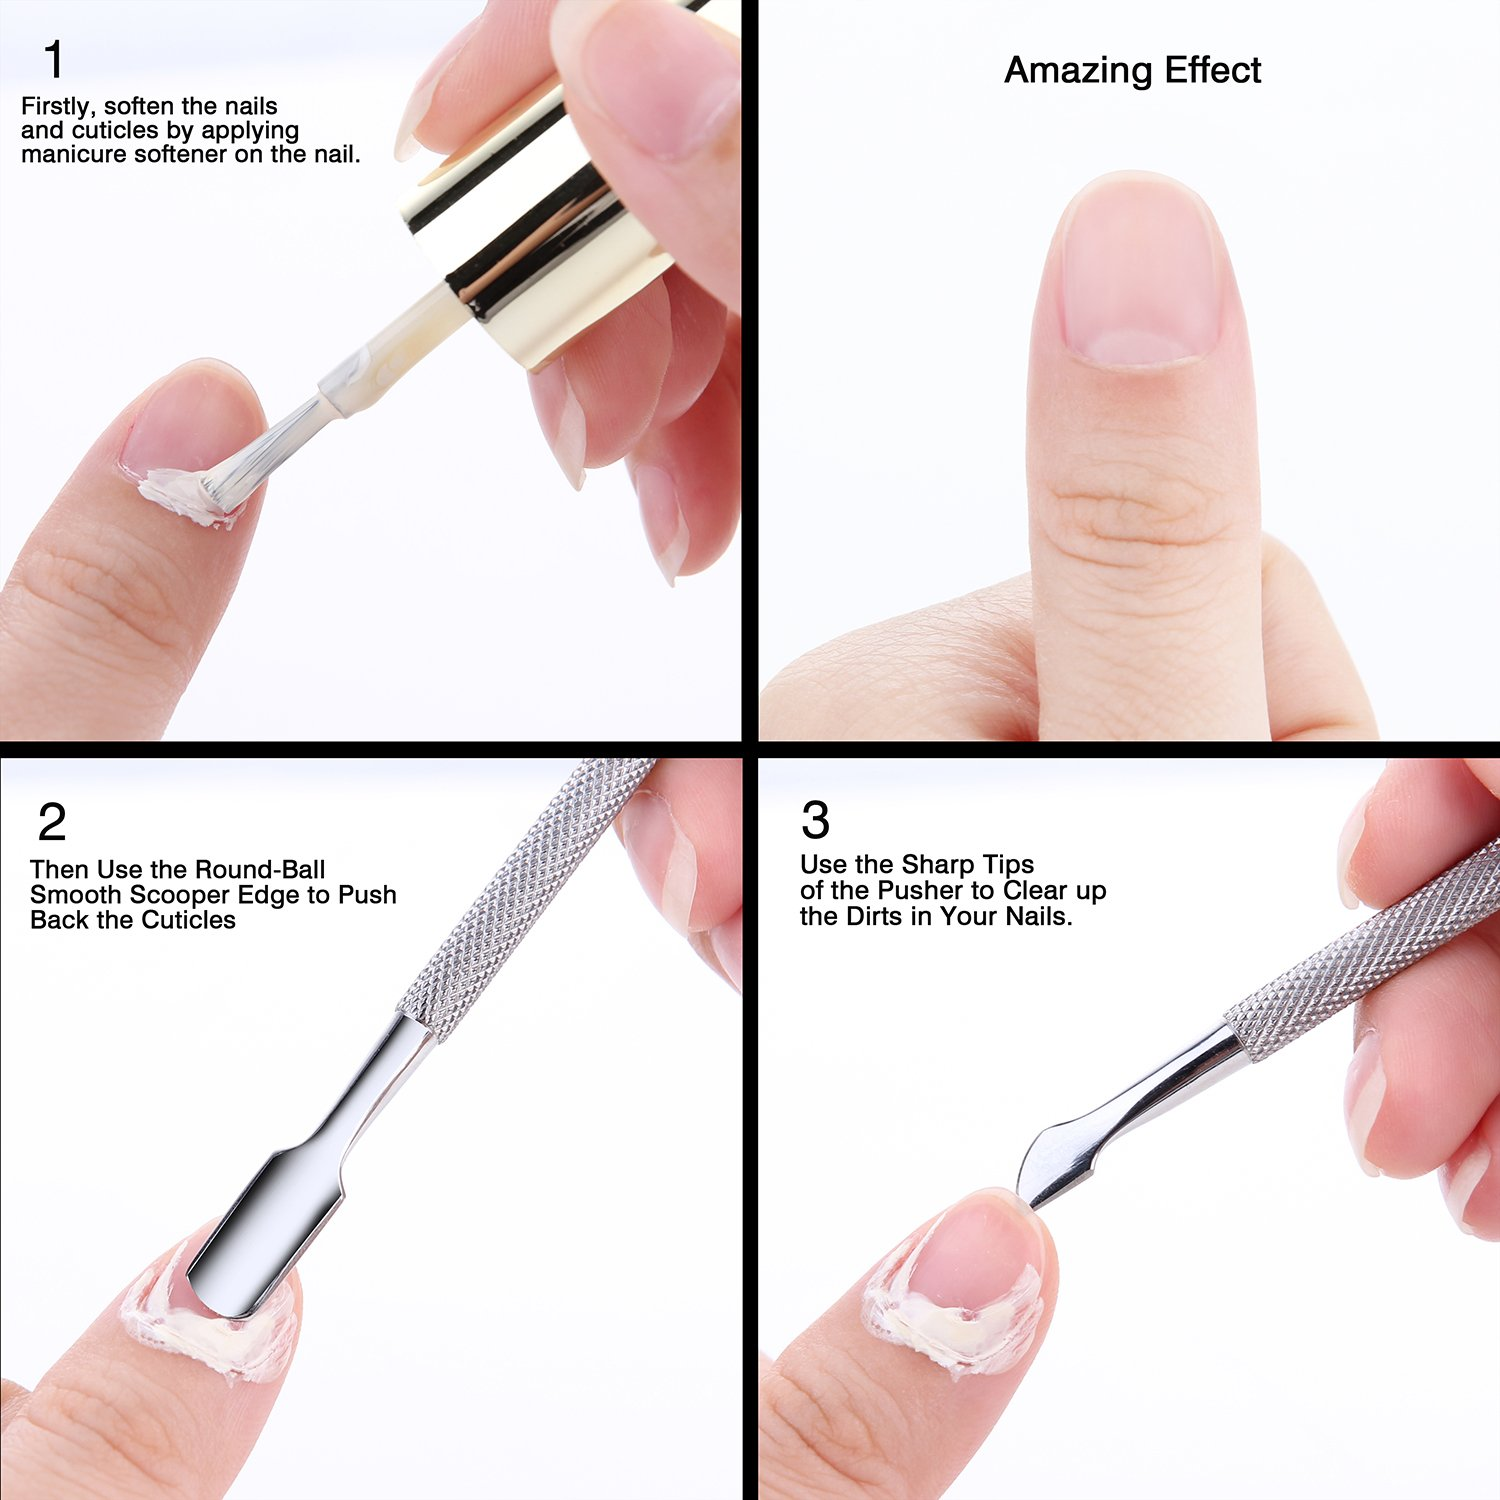 Manicure Pusher: How to choose and use